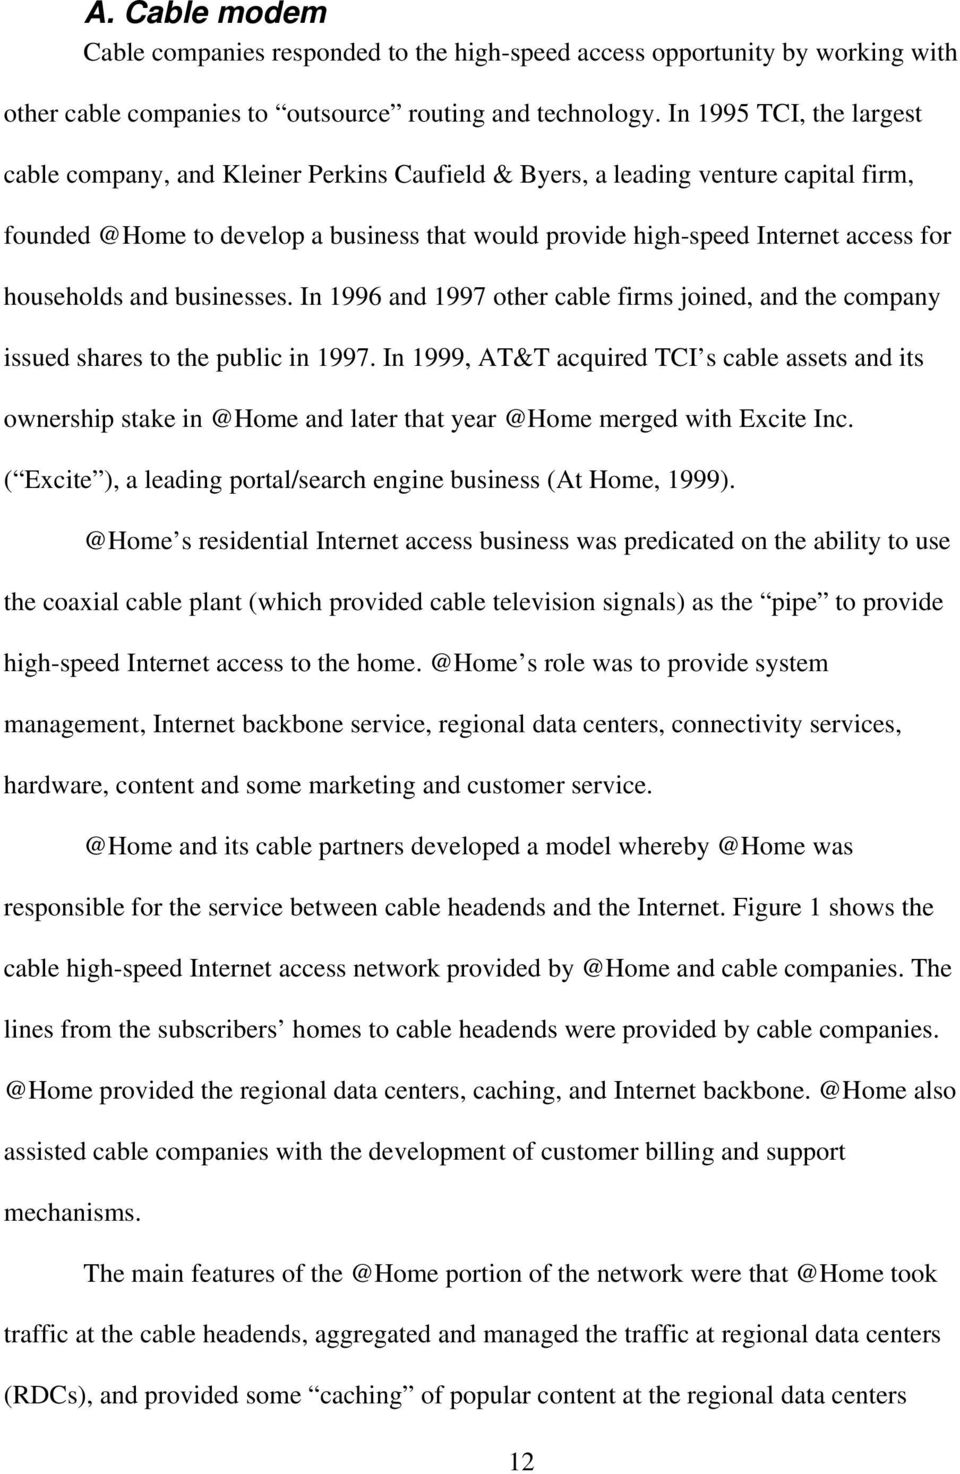 households and businesses. In 1996 and 1997 other cable firms joined, and the company issued shares to the public in 1997.